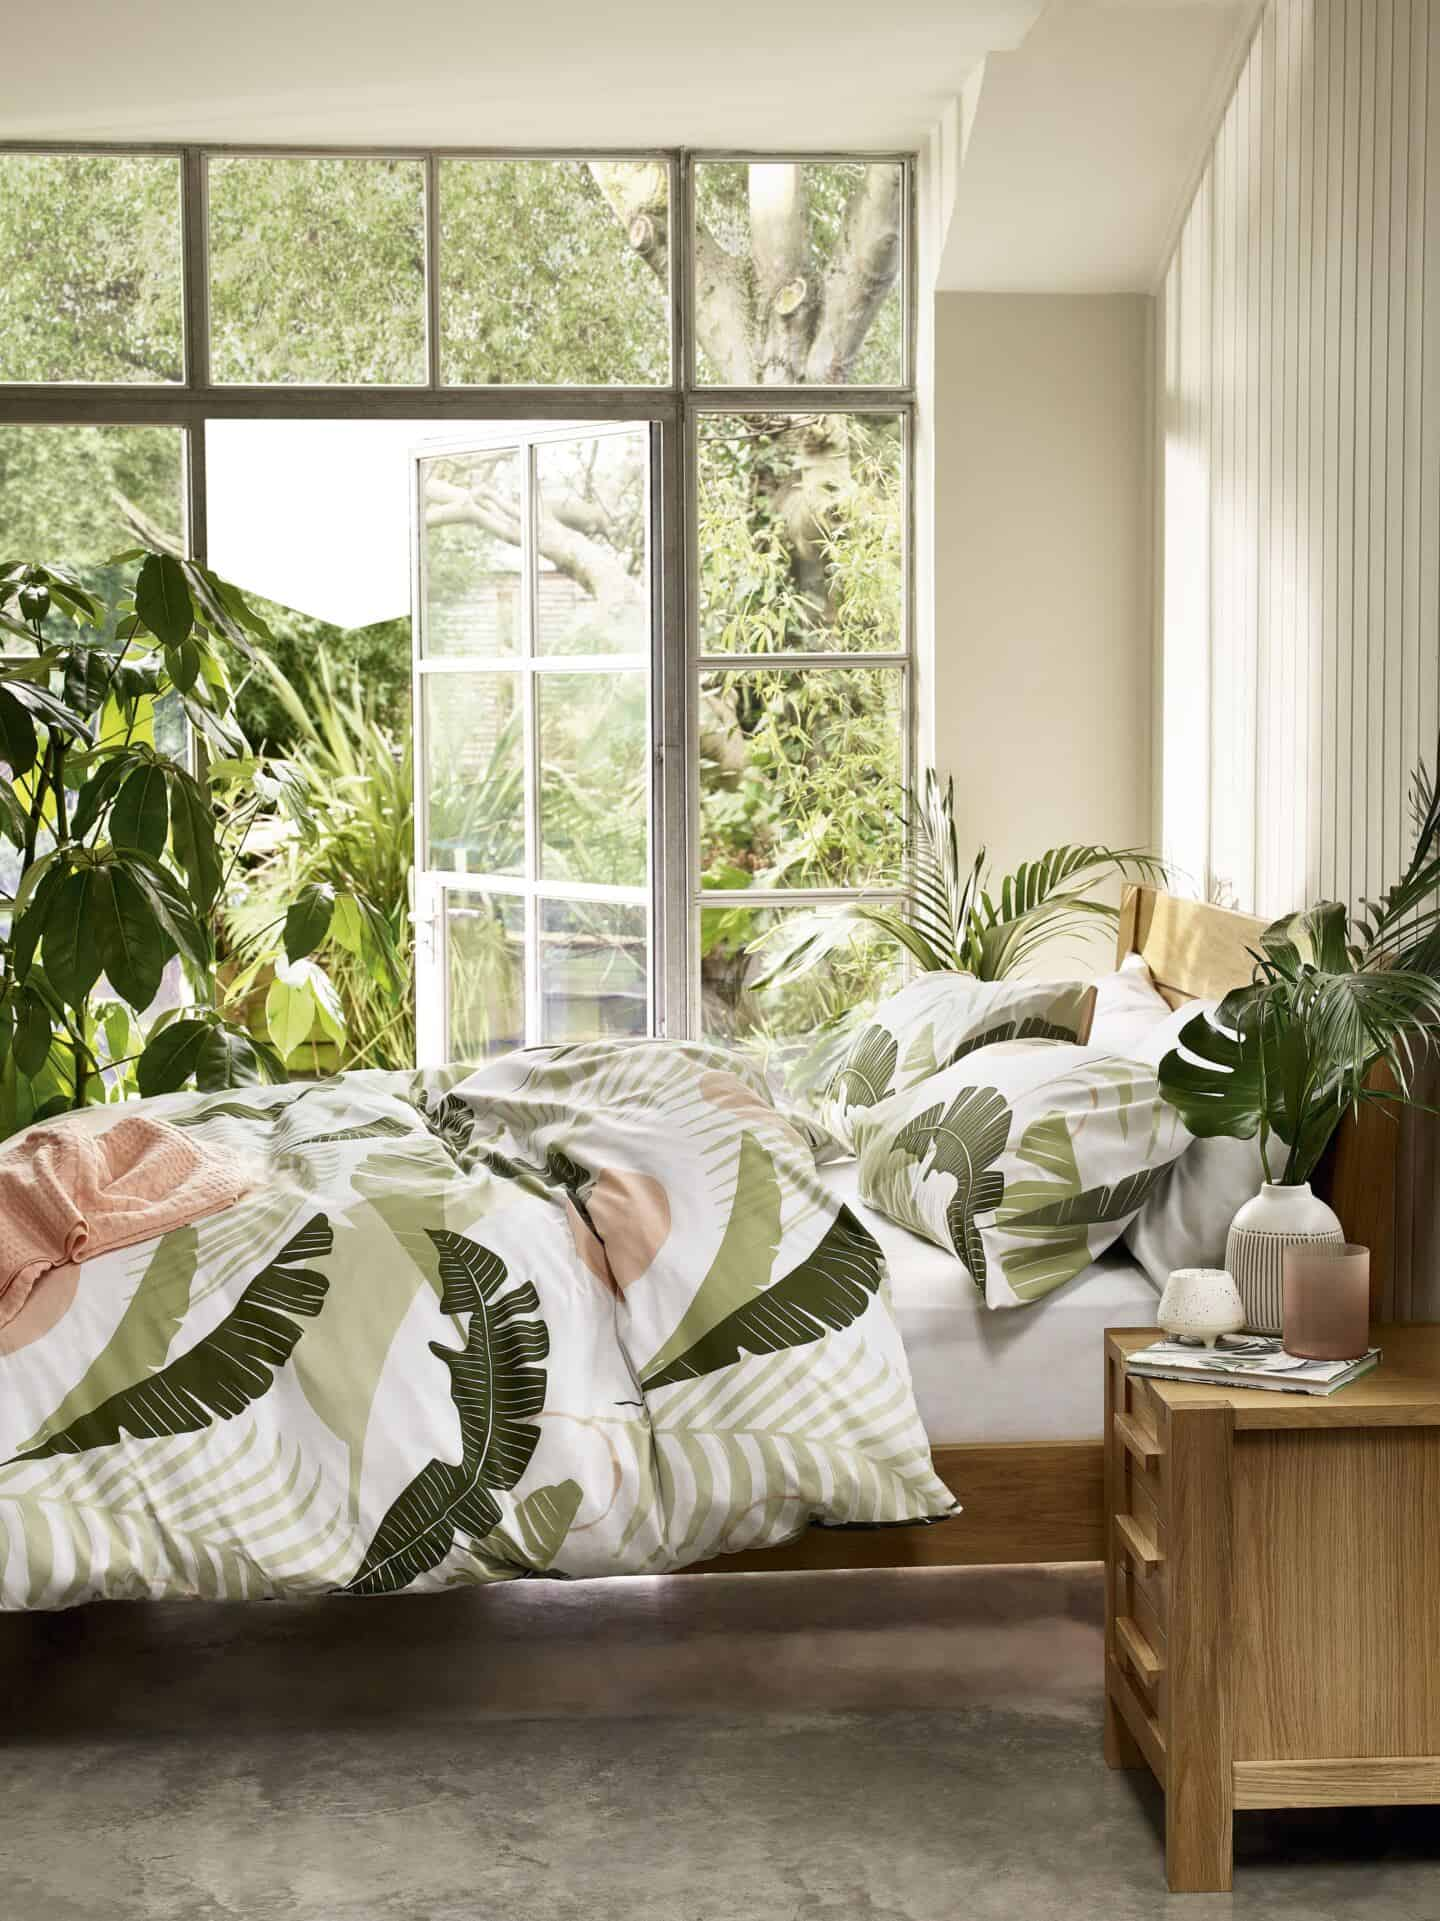 Nature in interiors. SS20 trend Botanical by M&S. Sonoma bedding on a wooden double bed in front of french doors with a garden outside